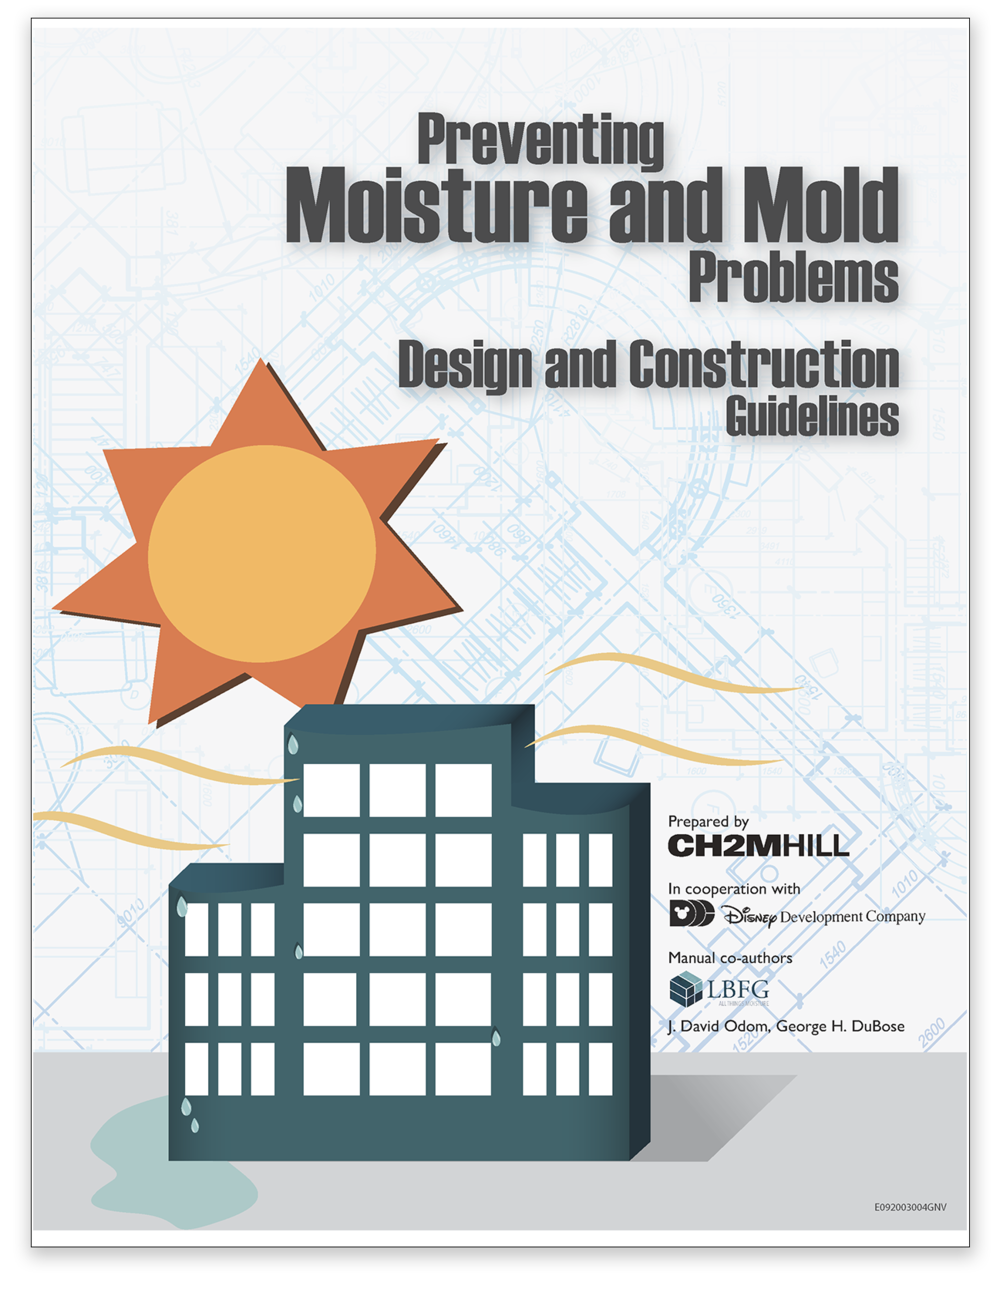 Publication - Preventing Mold and Moisture Problems